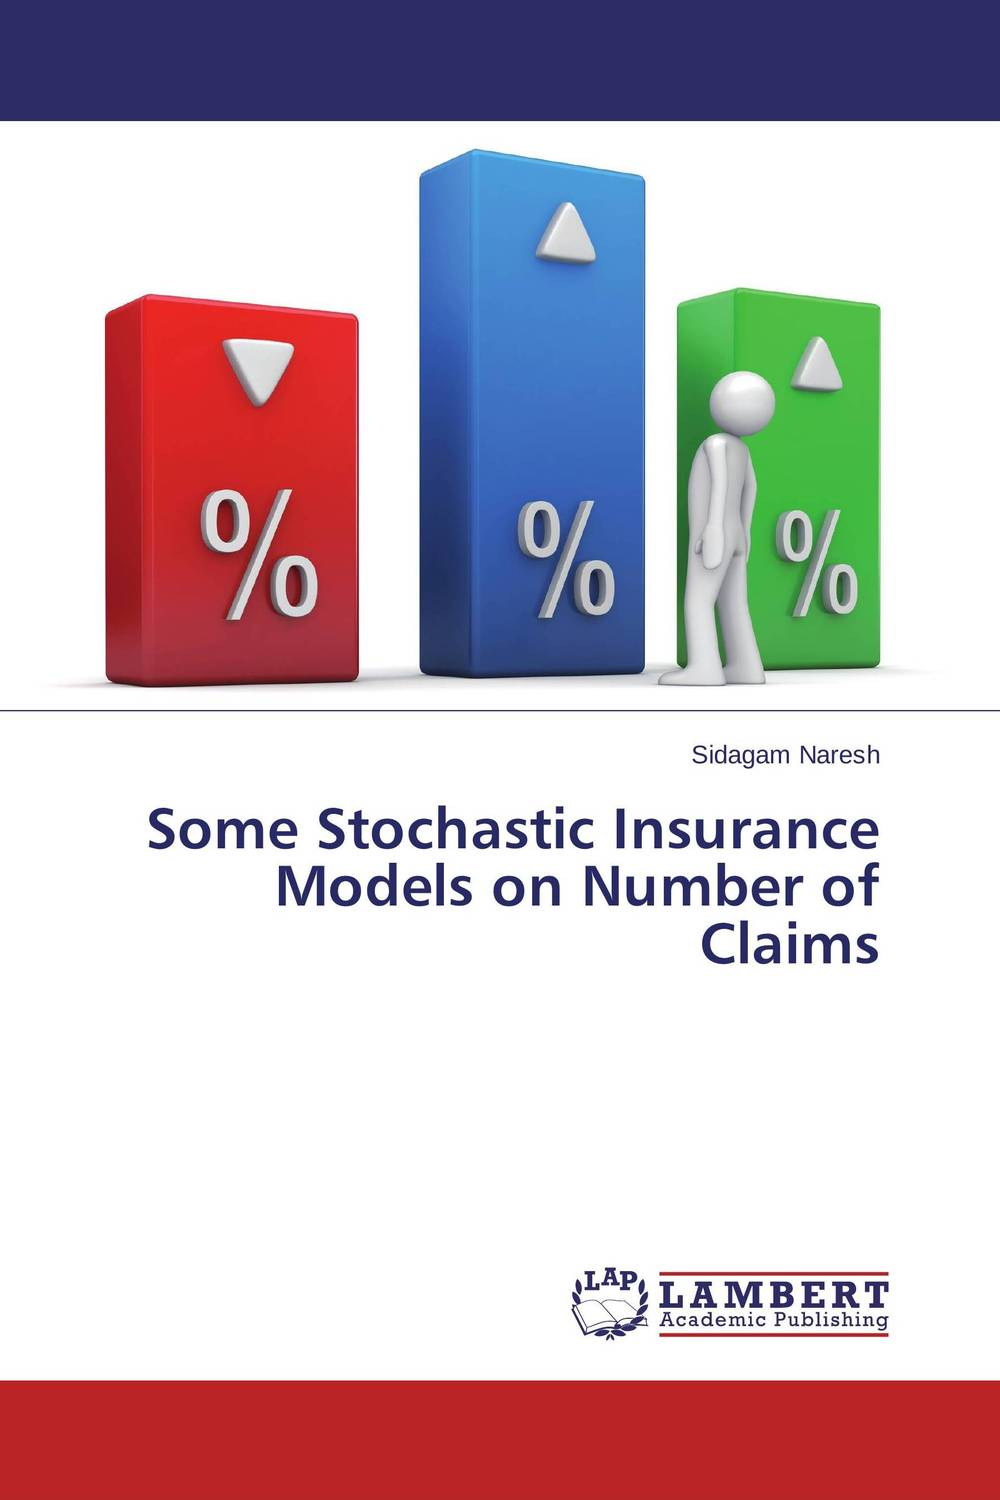 Some Stochastic Insurance Models on Number of Claims p c execs bullish on growth property casualty insurance statistical data included an article from national underwriter property